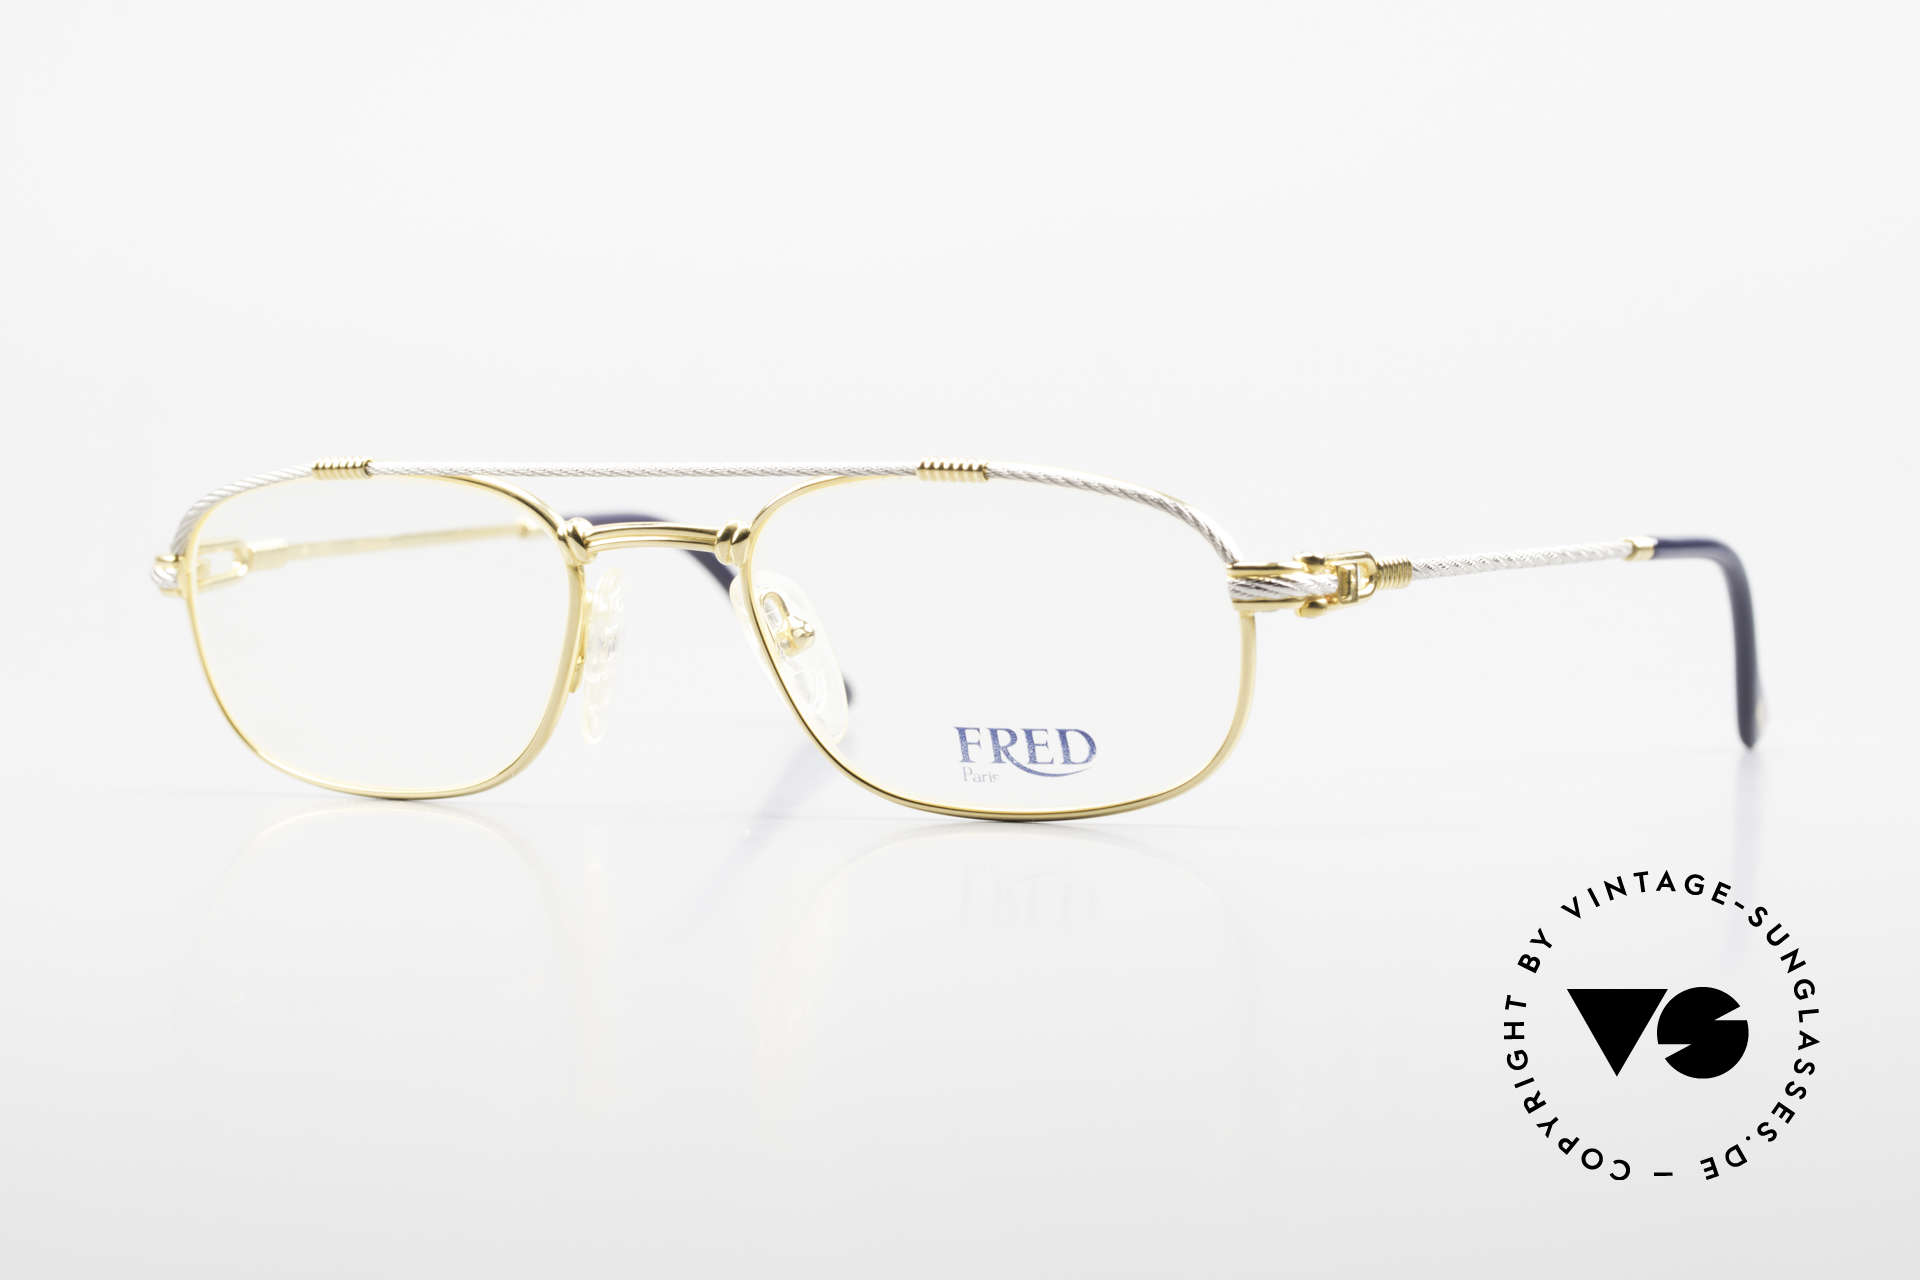 Fred Fregate Luxury Sailing Glasses S Frame, marine design (distinctive Fred) in high-end quality!, Made for Men